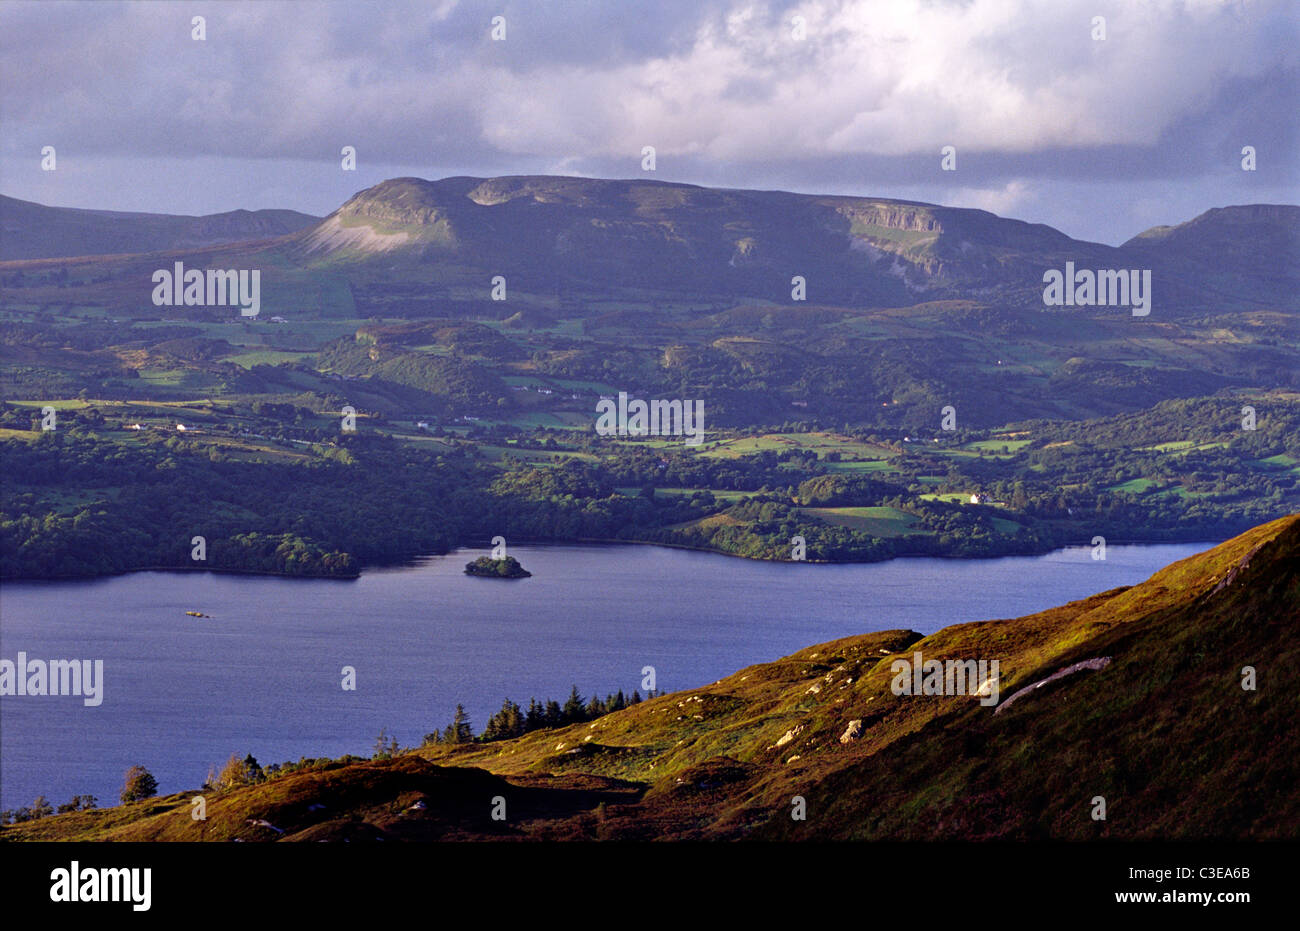 View over Lough Gill from Killery Mountain, County Sligo, Ireland. - Stock Image